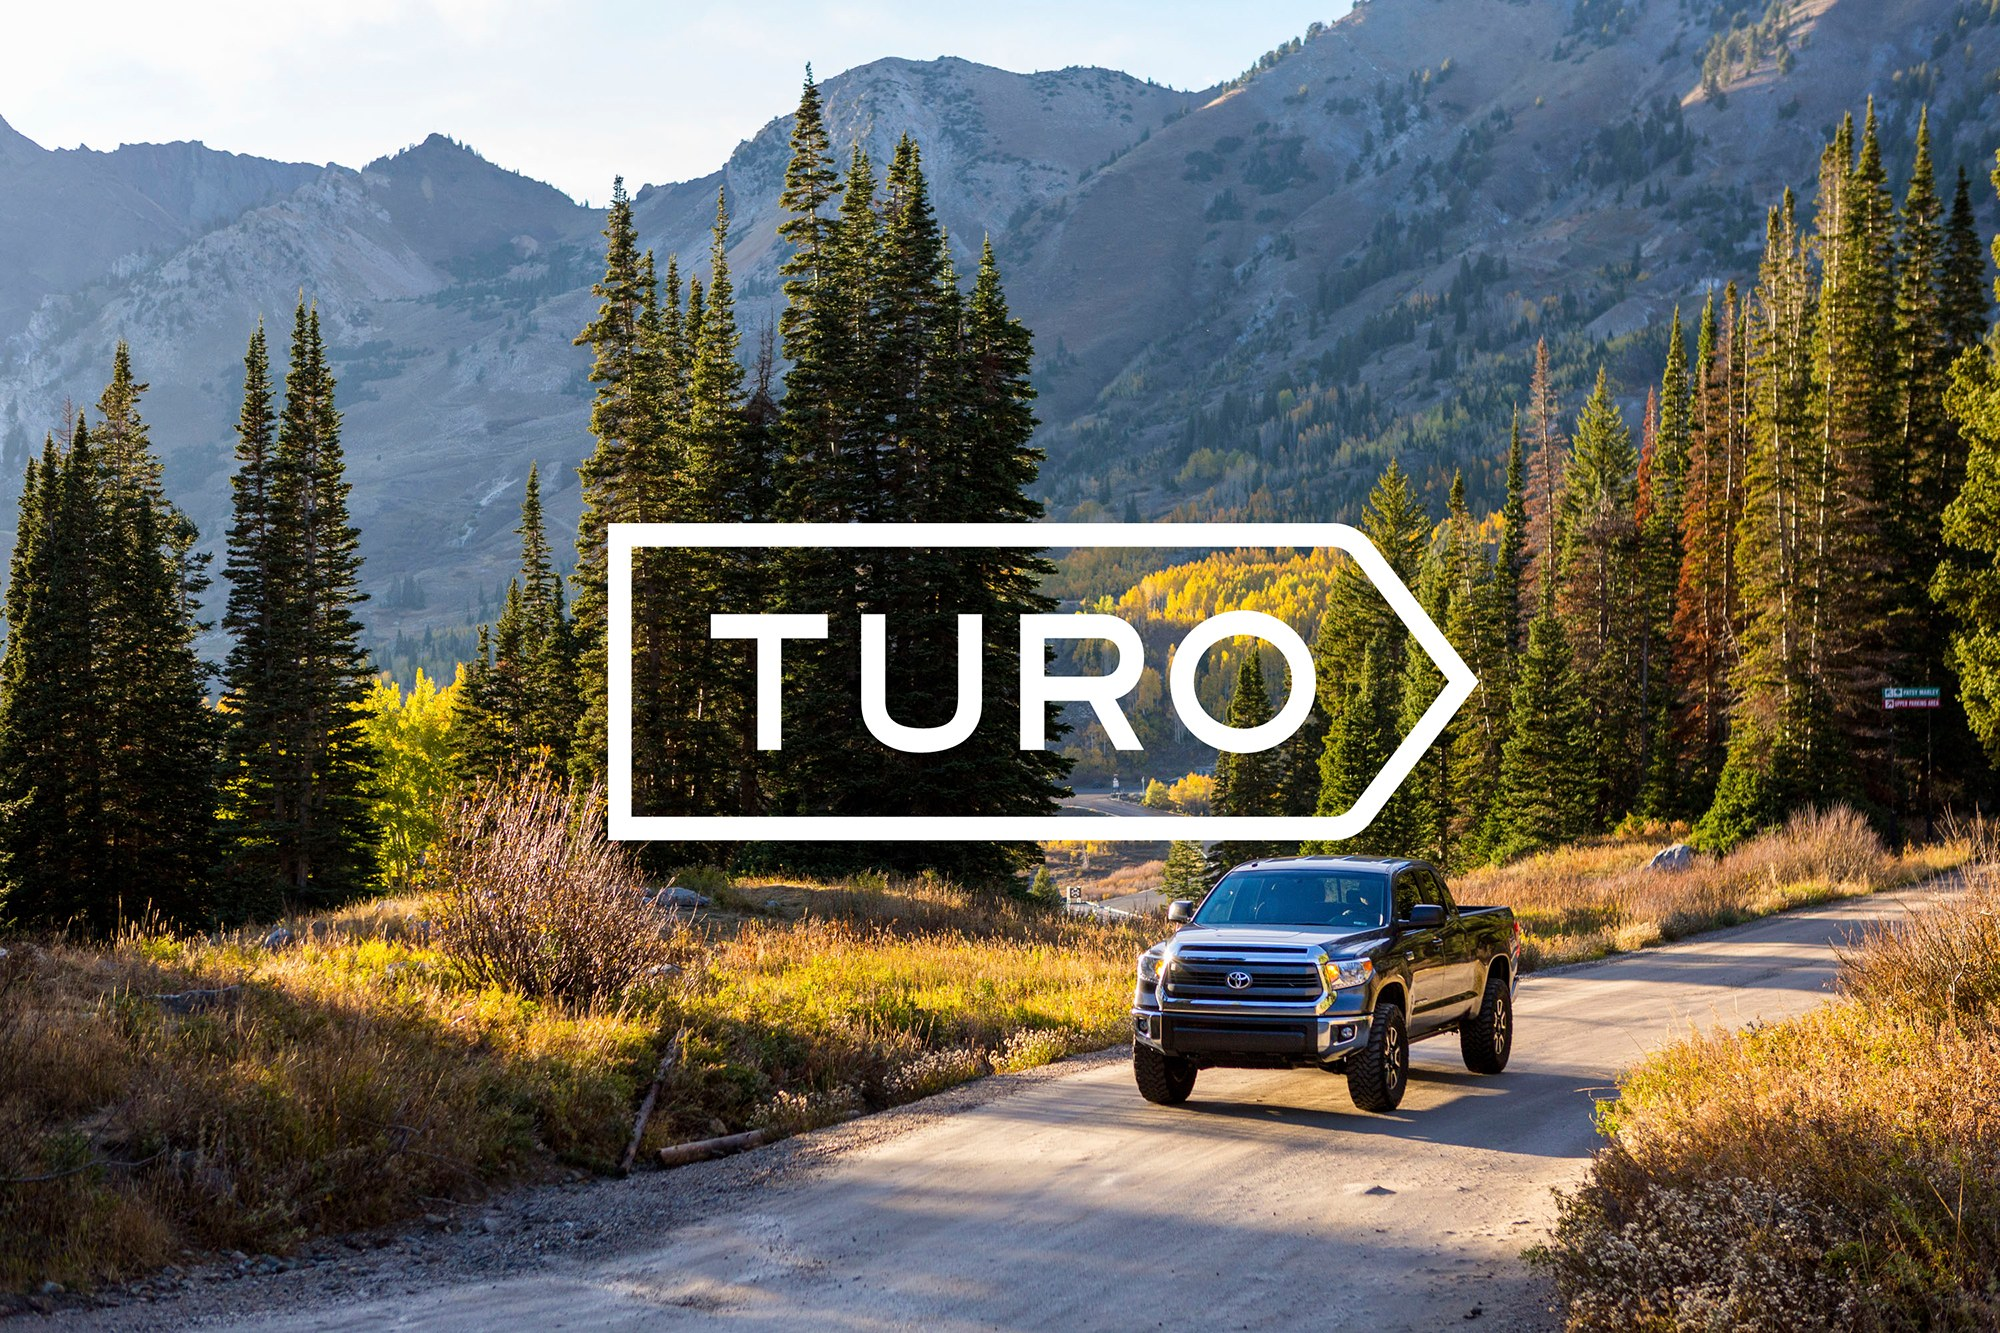 Car Owners can Share Their Car with Turo Go